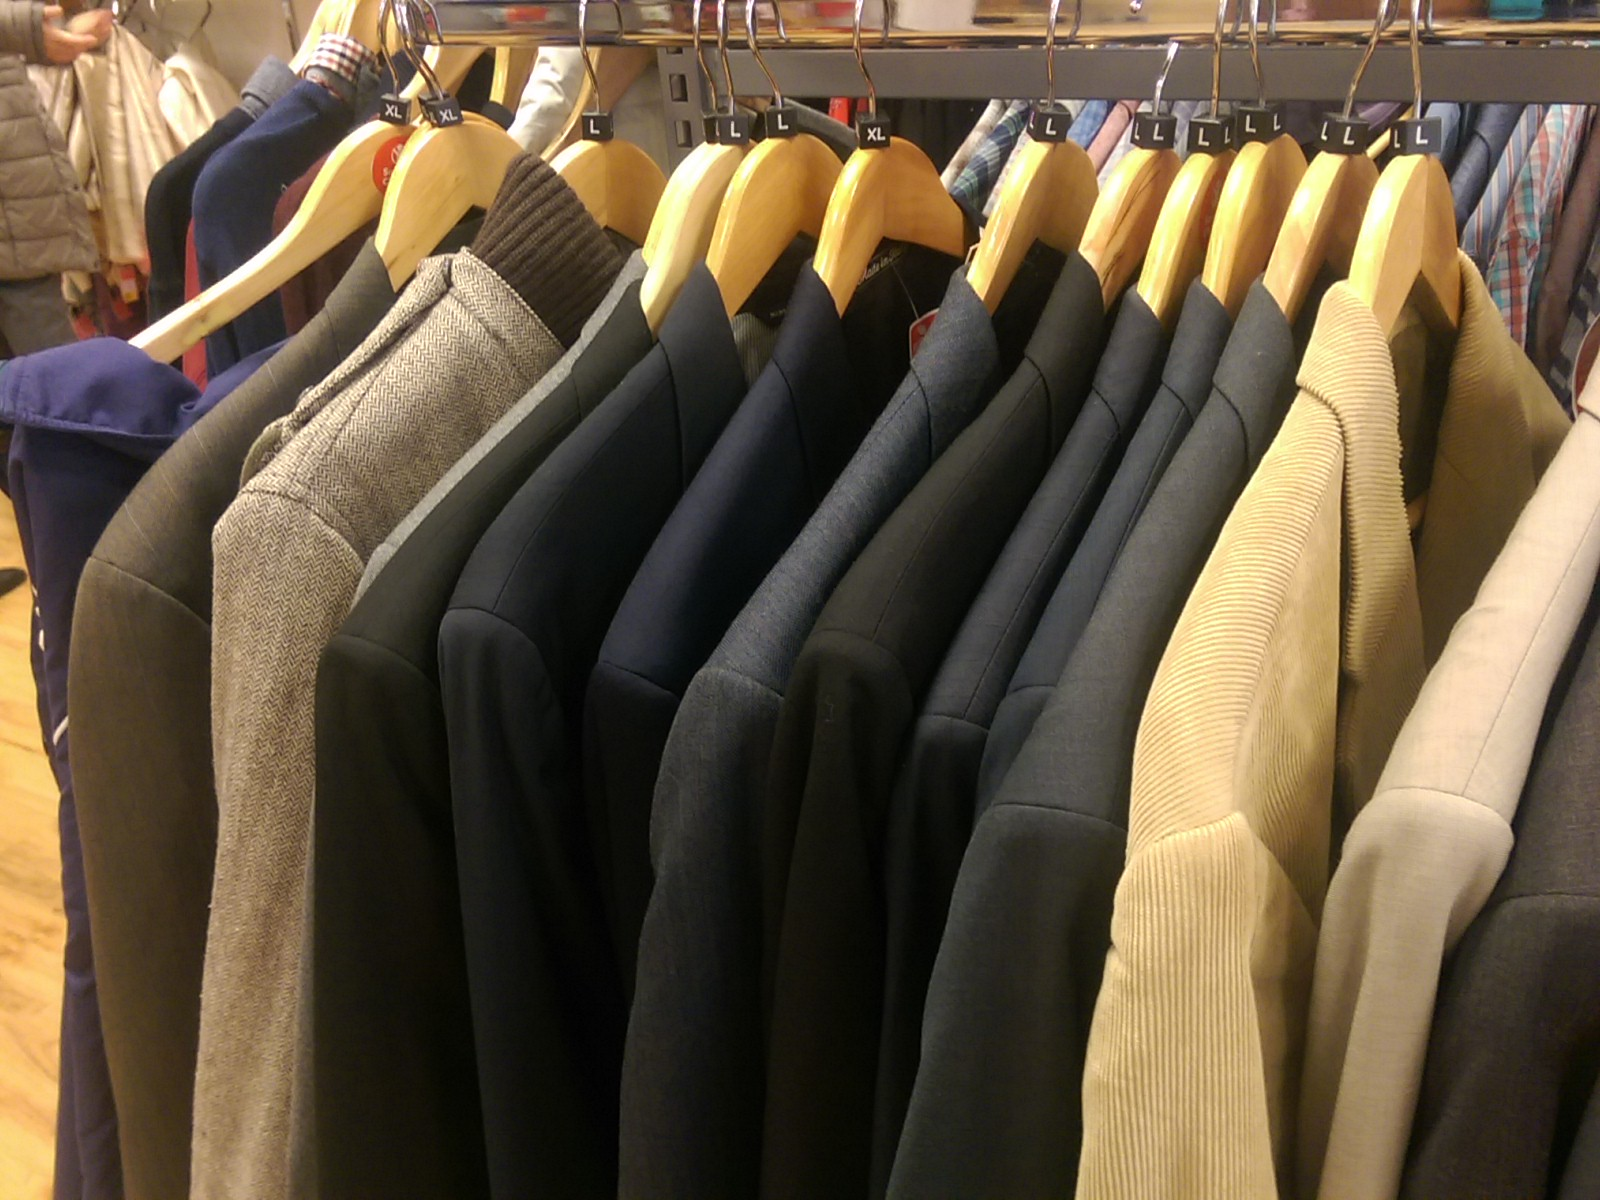 A rack of suit jackets in a shop